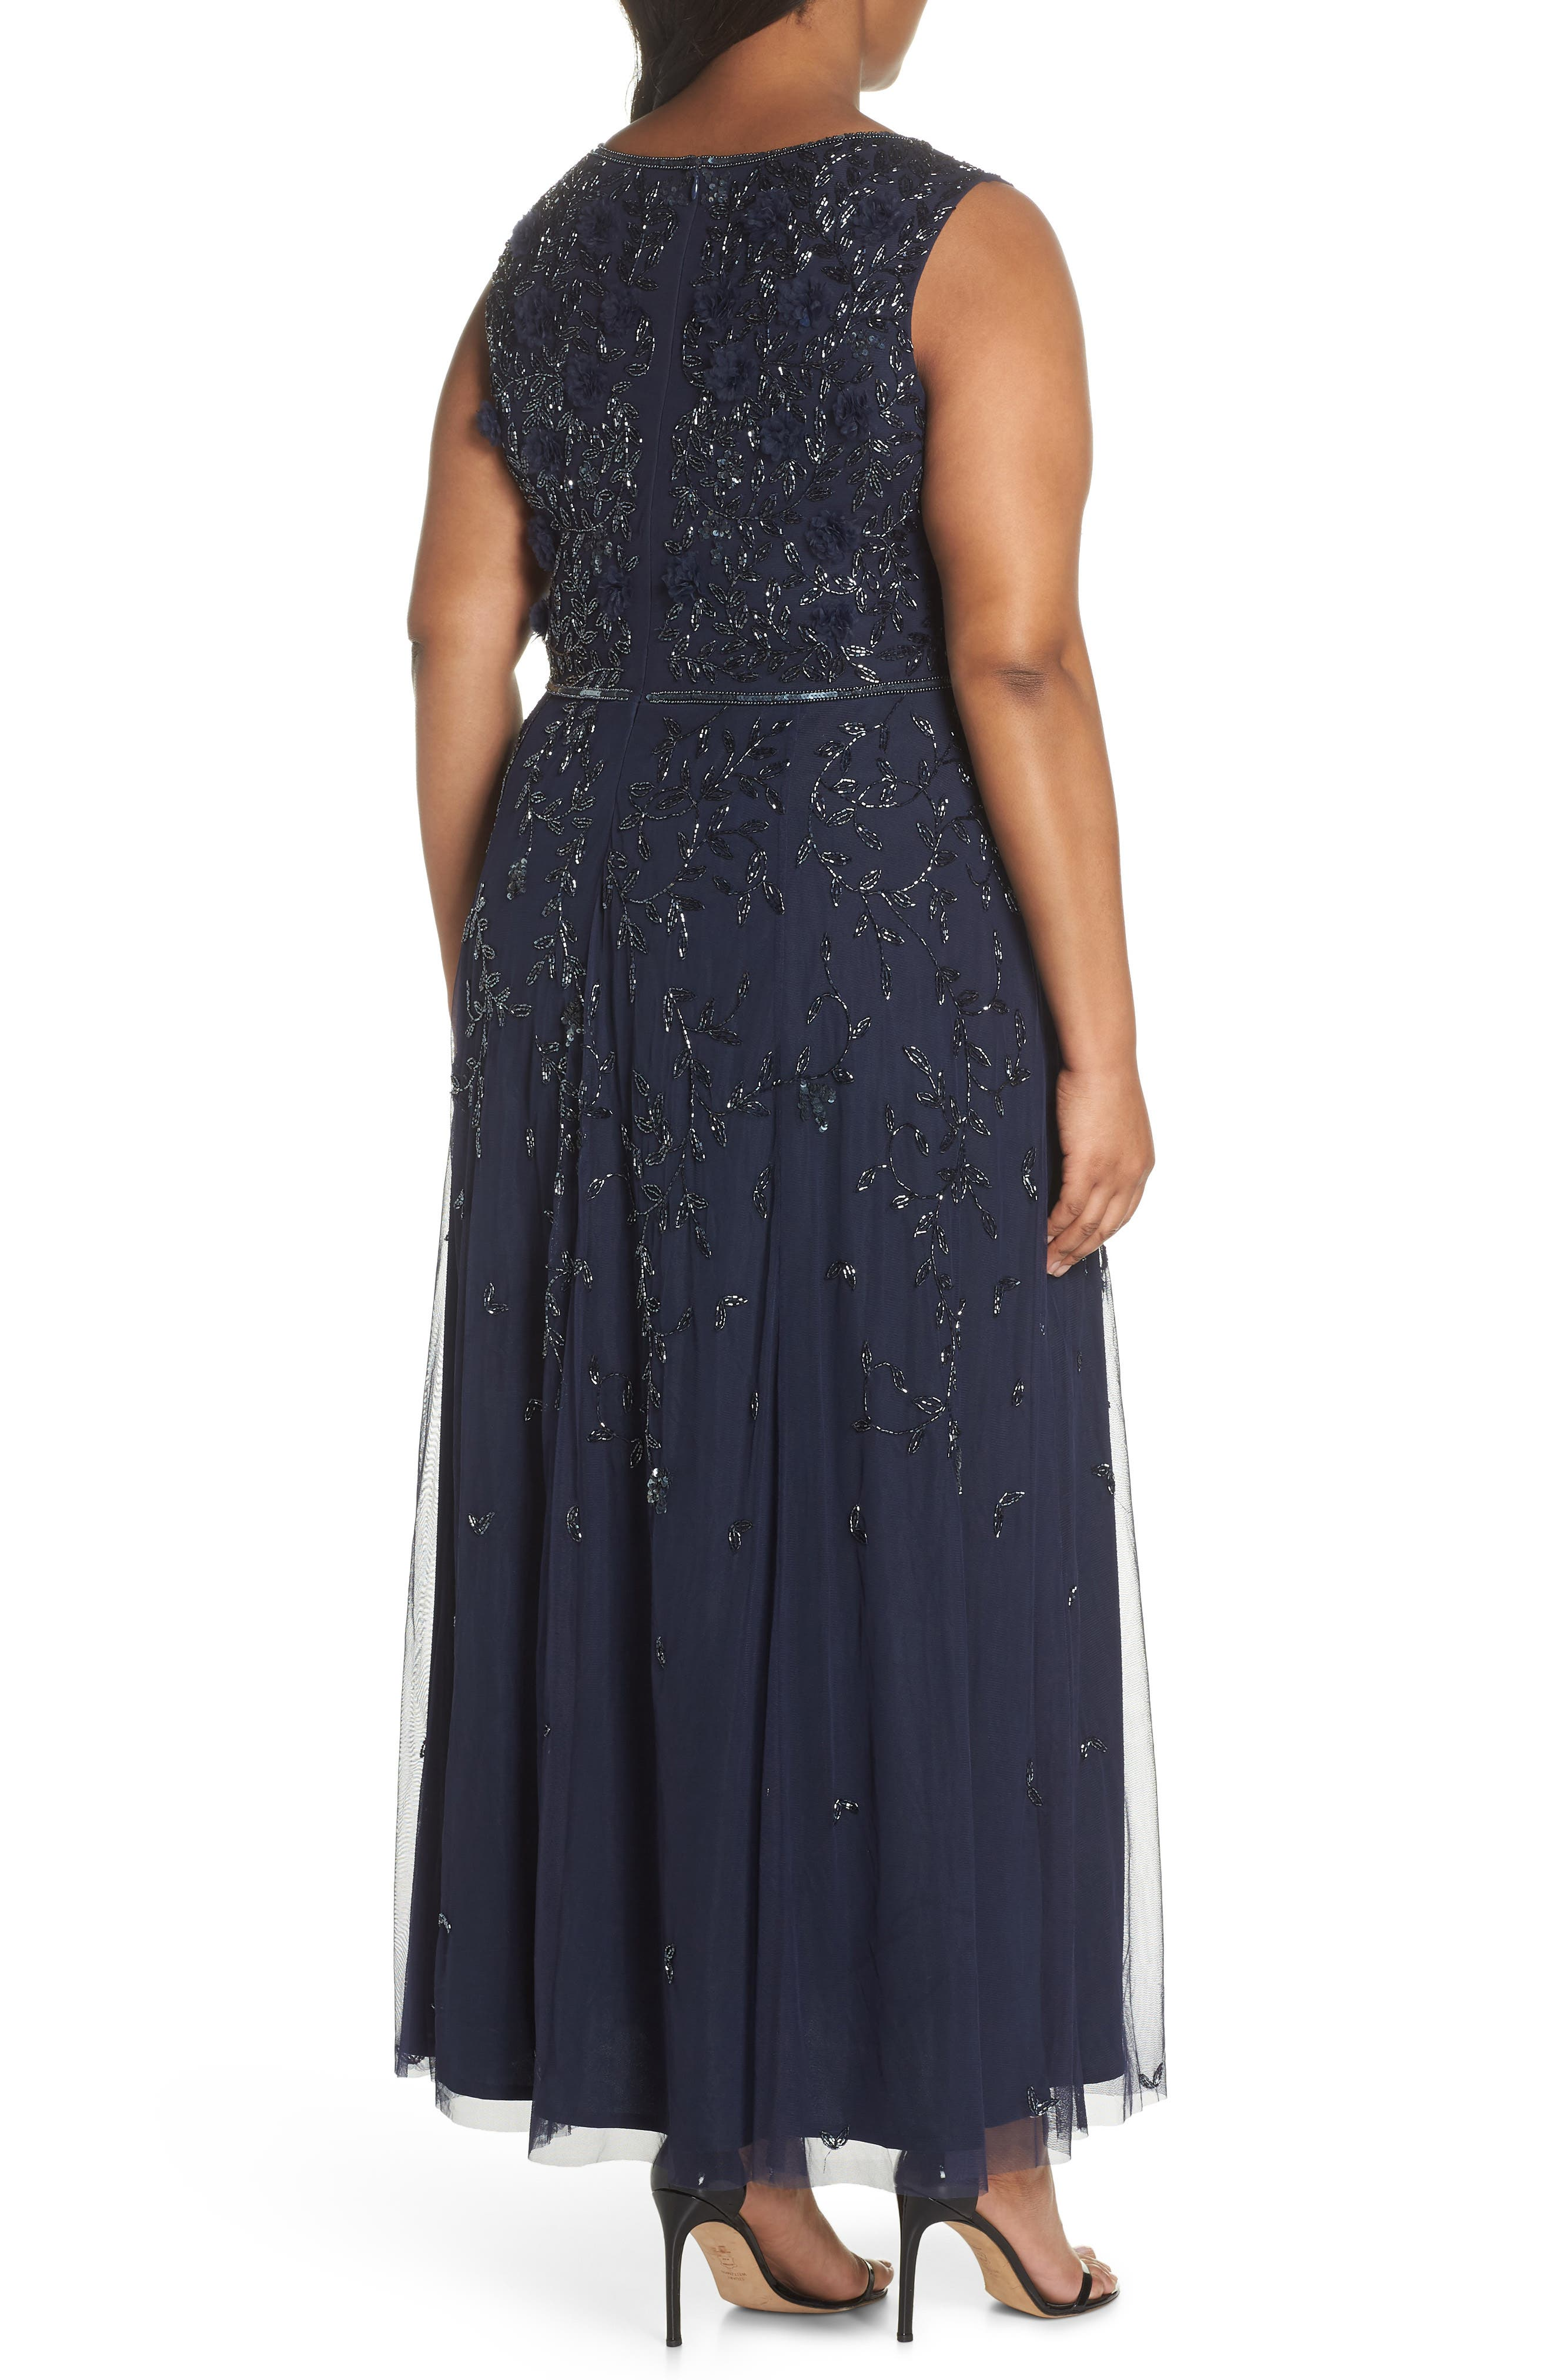 3D Embellished Mesh A-Line Gown,                             Alternate thumbnail 2, color,                             Navy